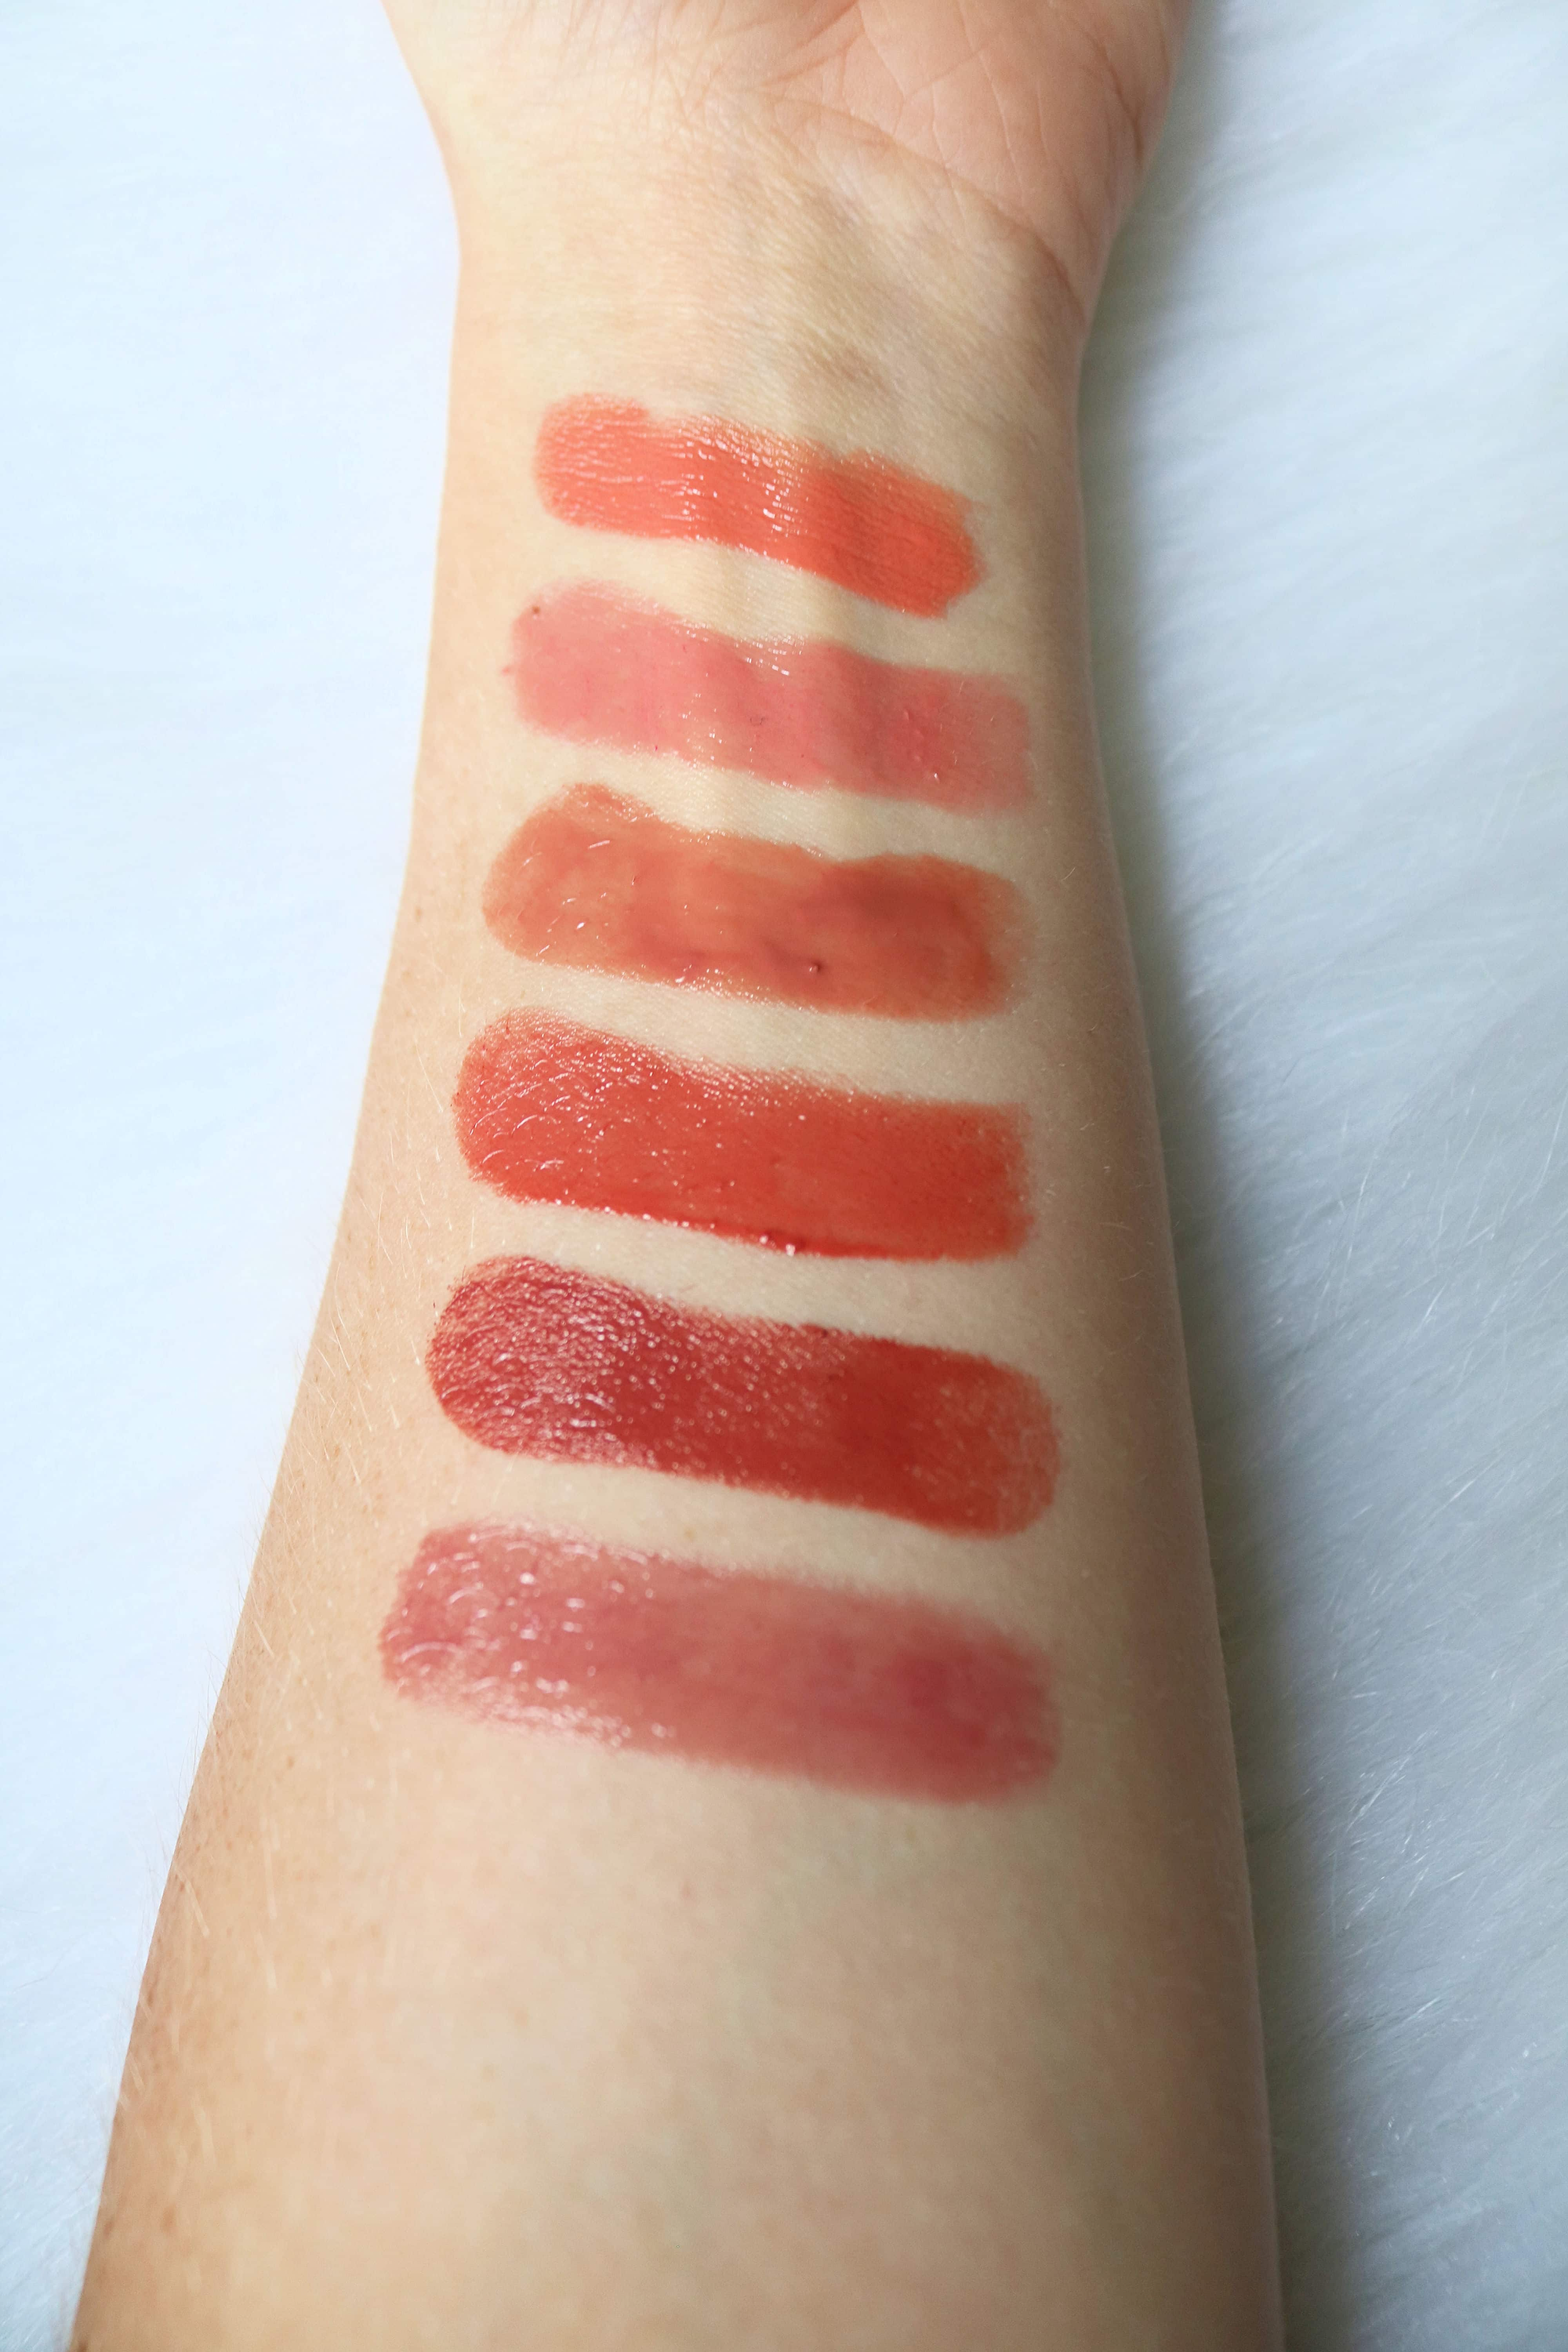 Check out my review and swatches of the Physicians Formula Butter Lip Creams. They're an affordable, soft butter lip balm with SPF 15 and 12 gorgeous shades! #physiciansformula #lipcreams #lipstick #drugstoremakeup